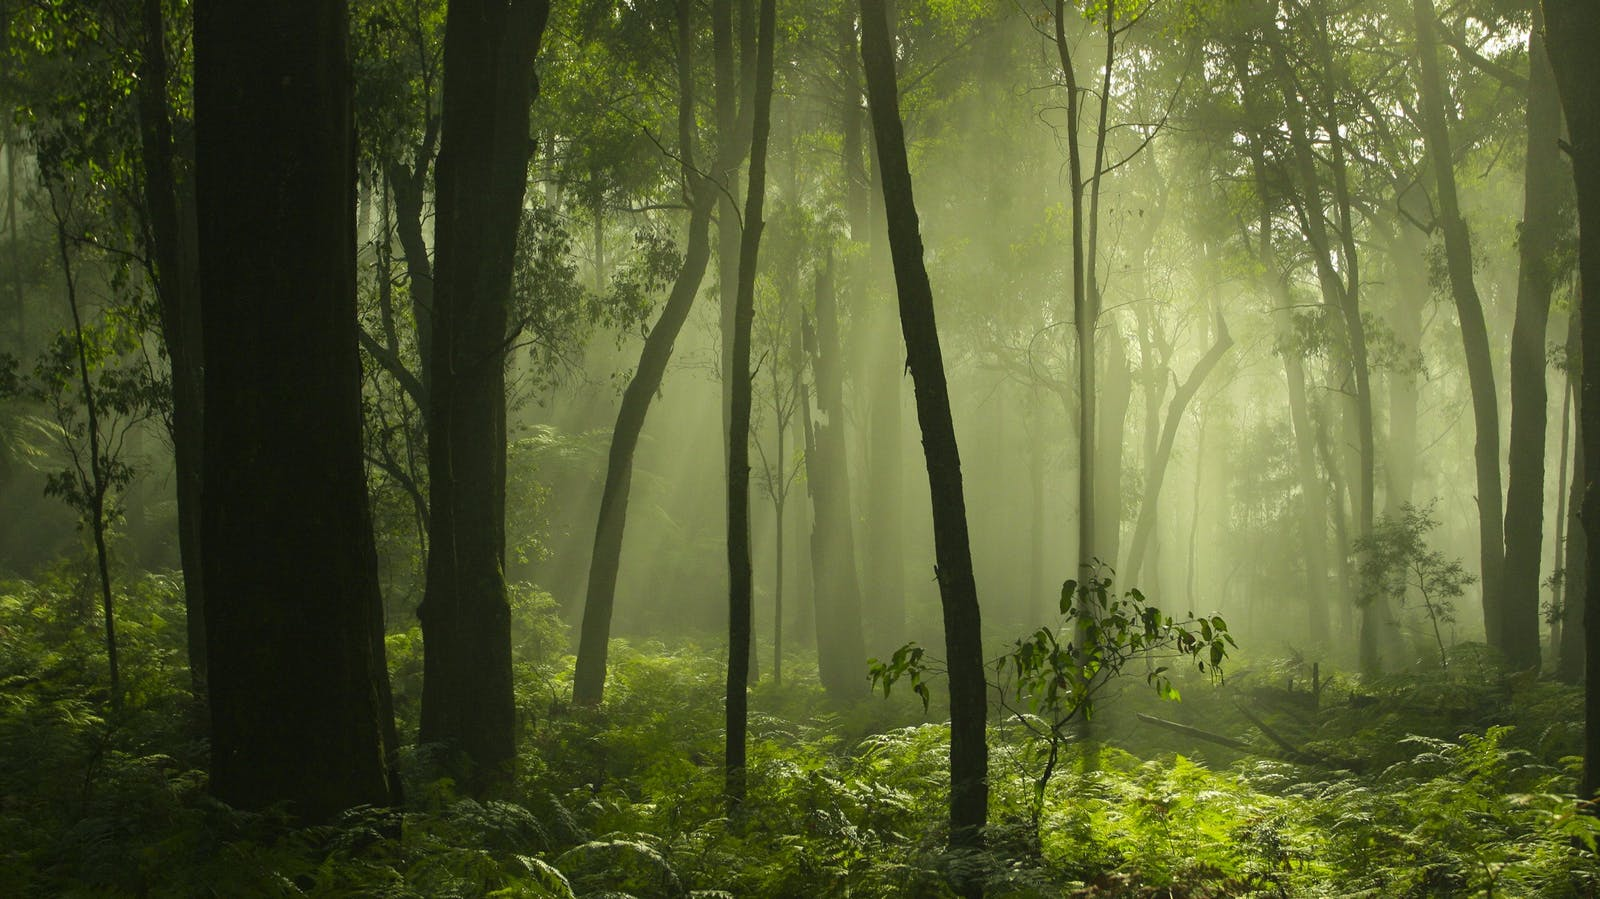 Green Mist in forest setting